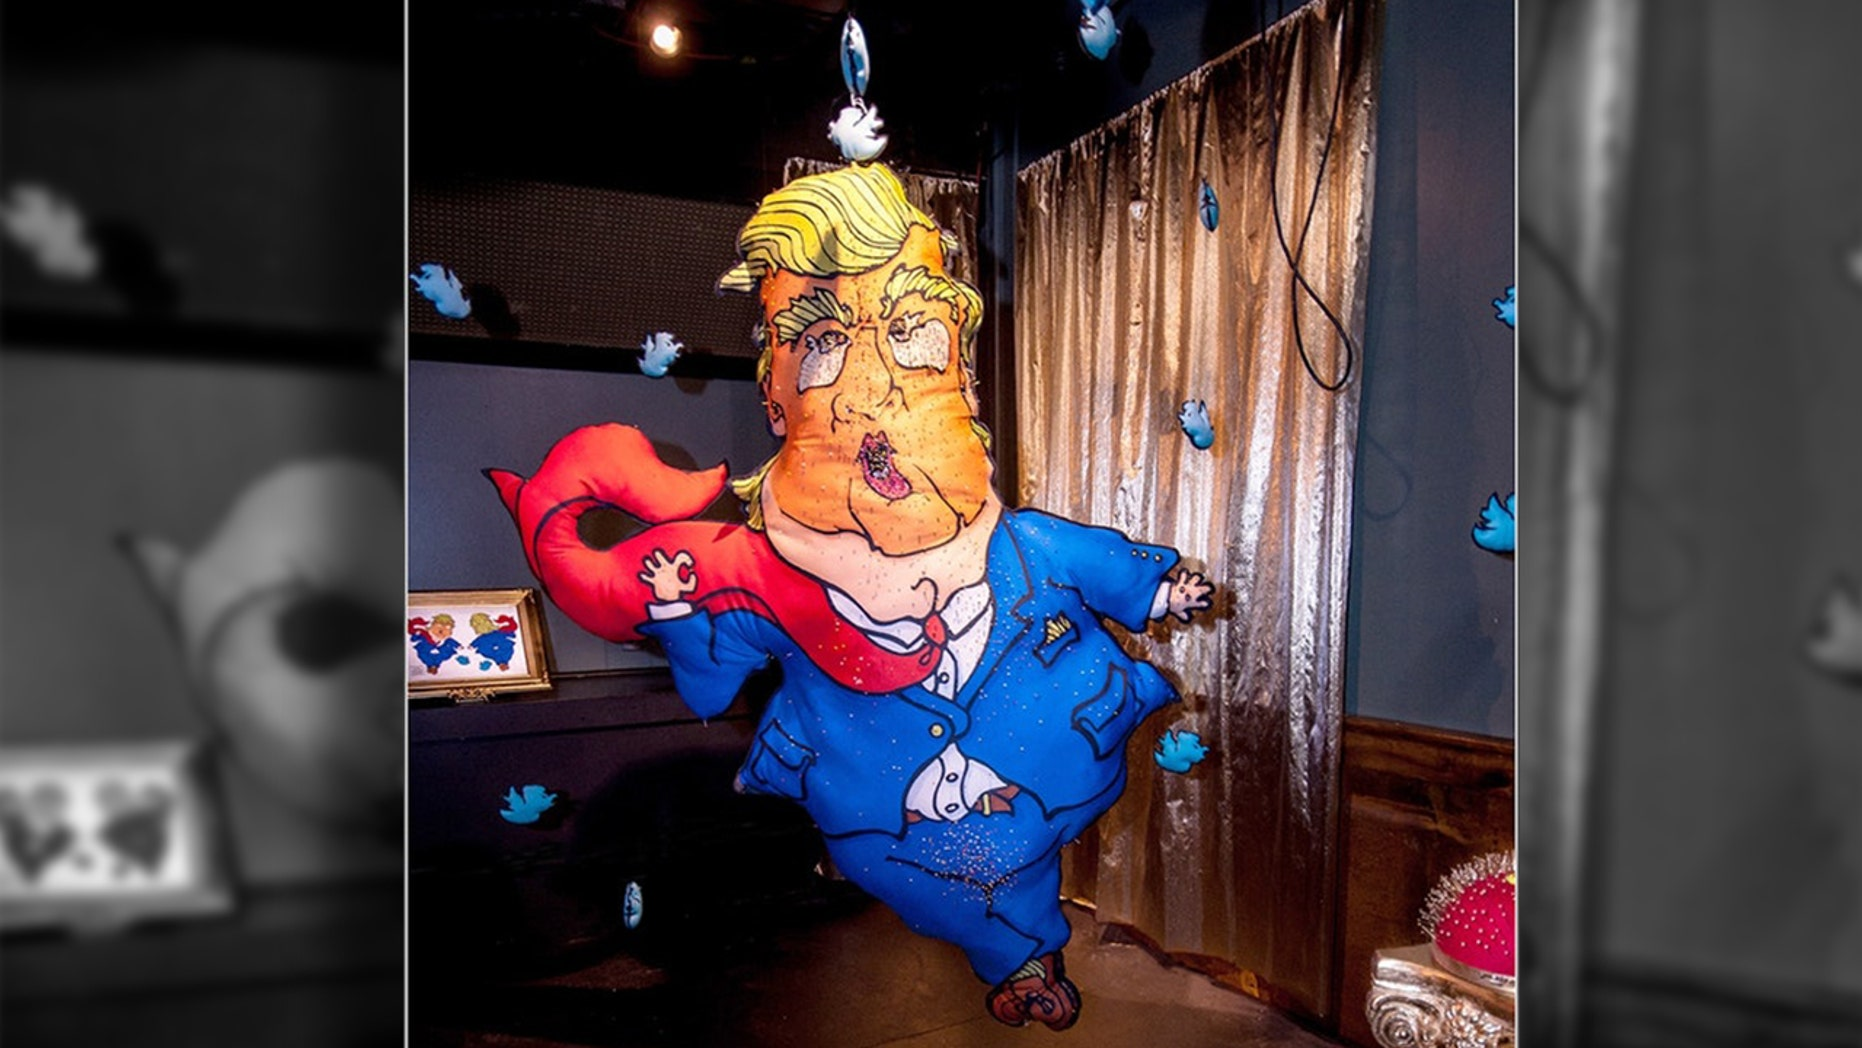 Art Prize, a national art contest held in Grand Rapid, Michigan, has allowed an artist to display a pin cushion in the image of President Donald Trump. The artist encouraged visitors to stick pins into the exaggerated likeness of the president. Over 10,000 pins have been stuck into the piece of art since it has been on display.